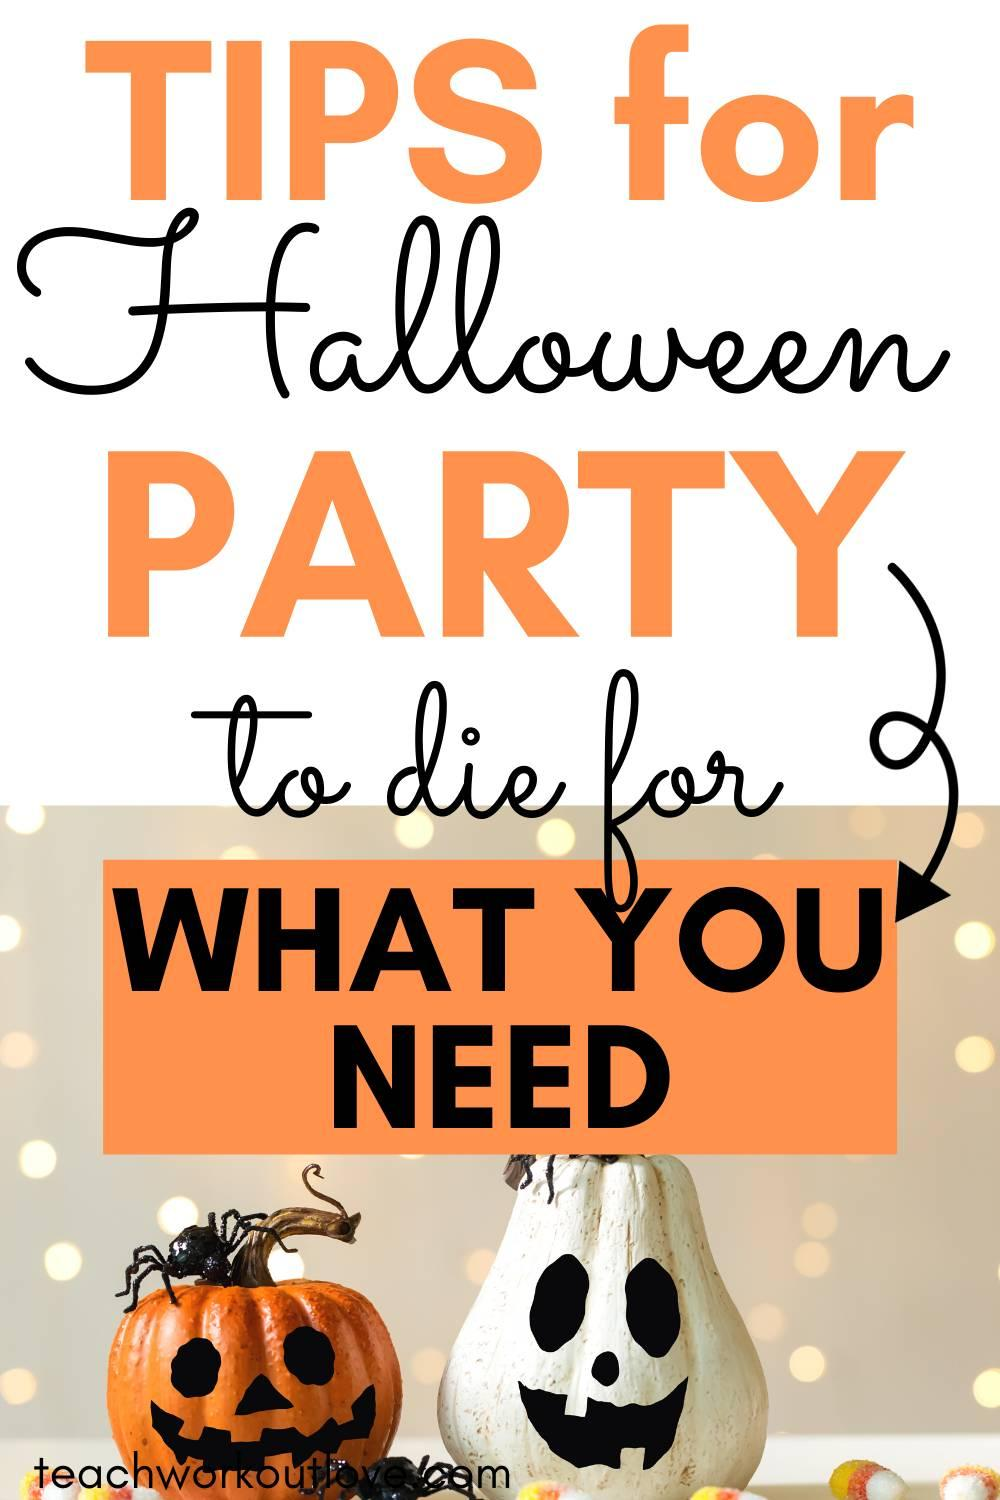 If you're in need of some tips on how to make your Halloween party the ultimate Halloween bash then keep reading!